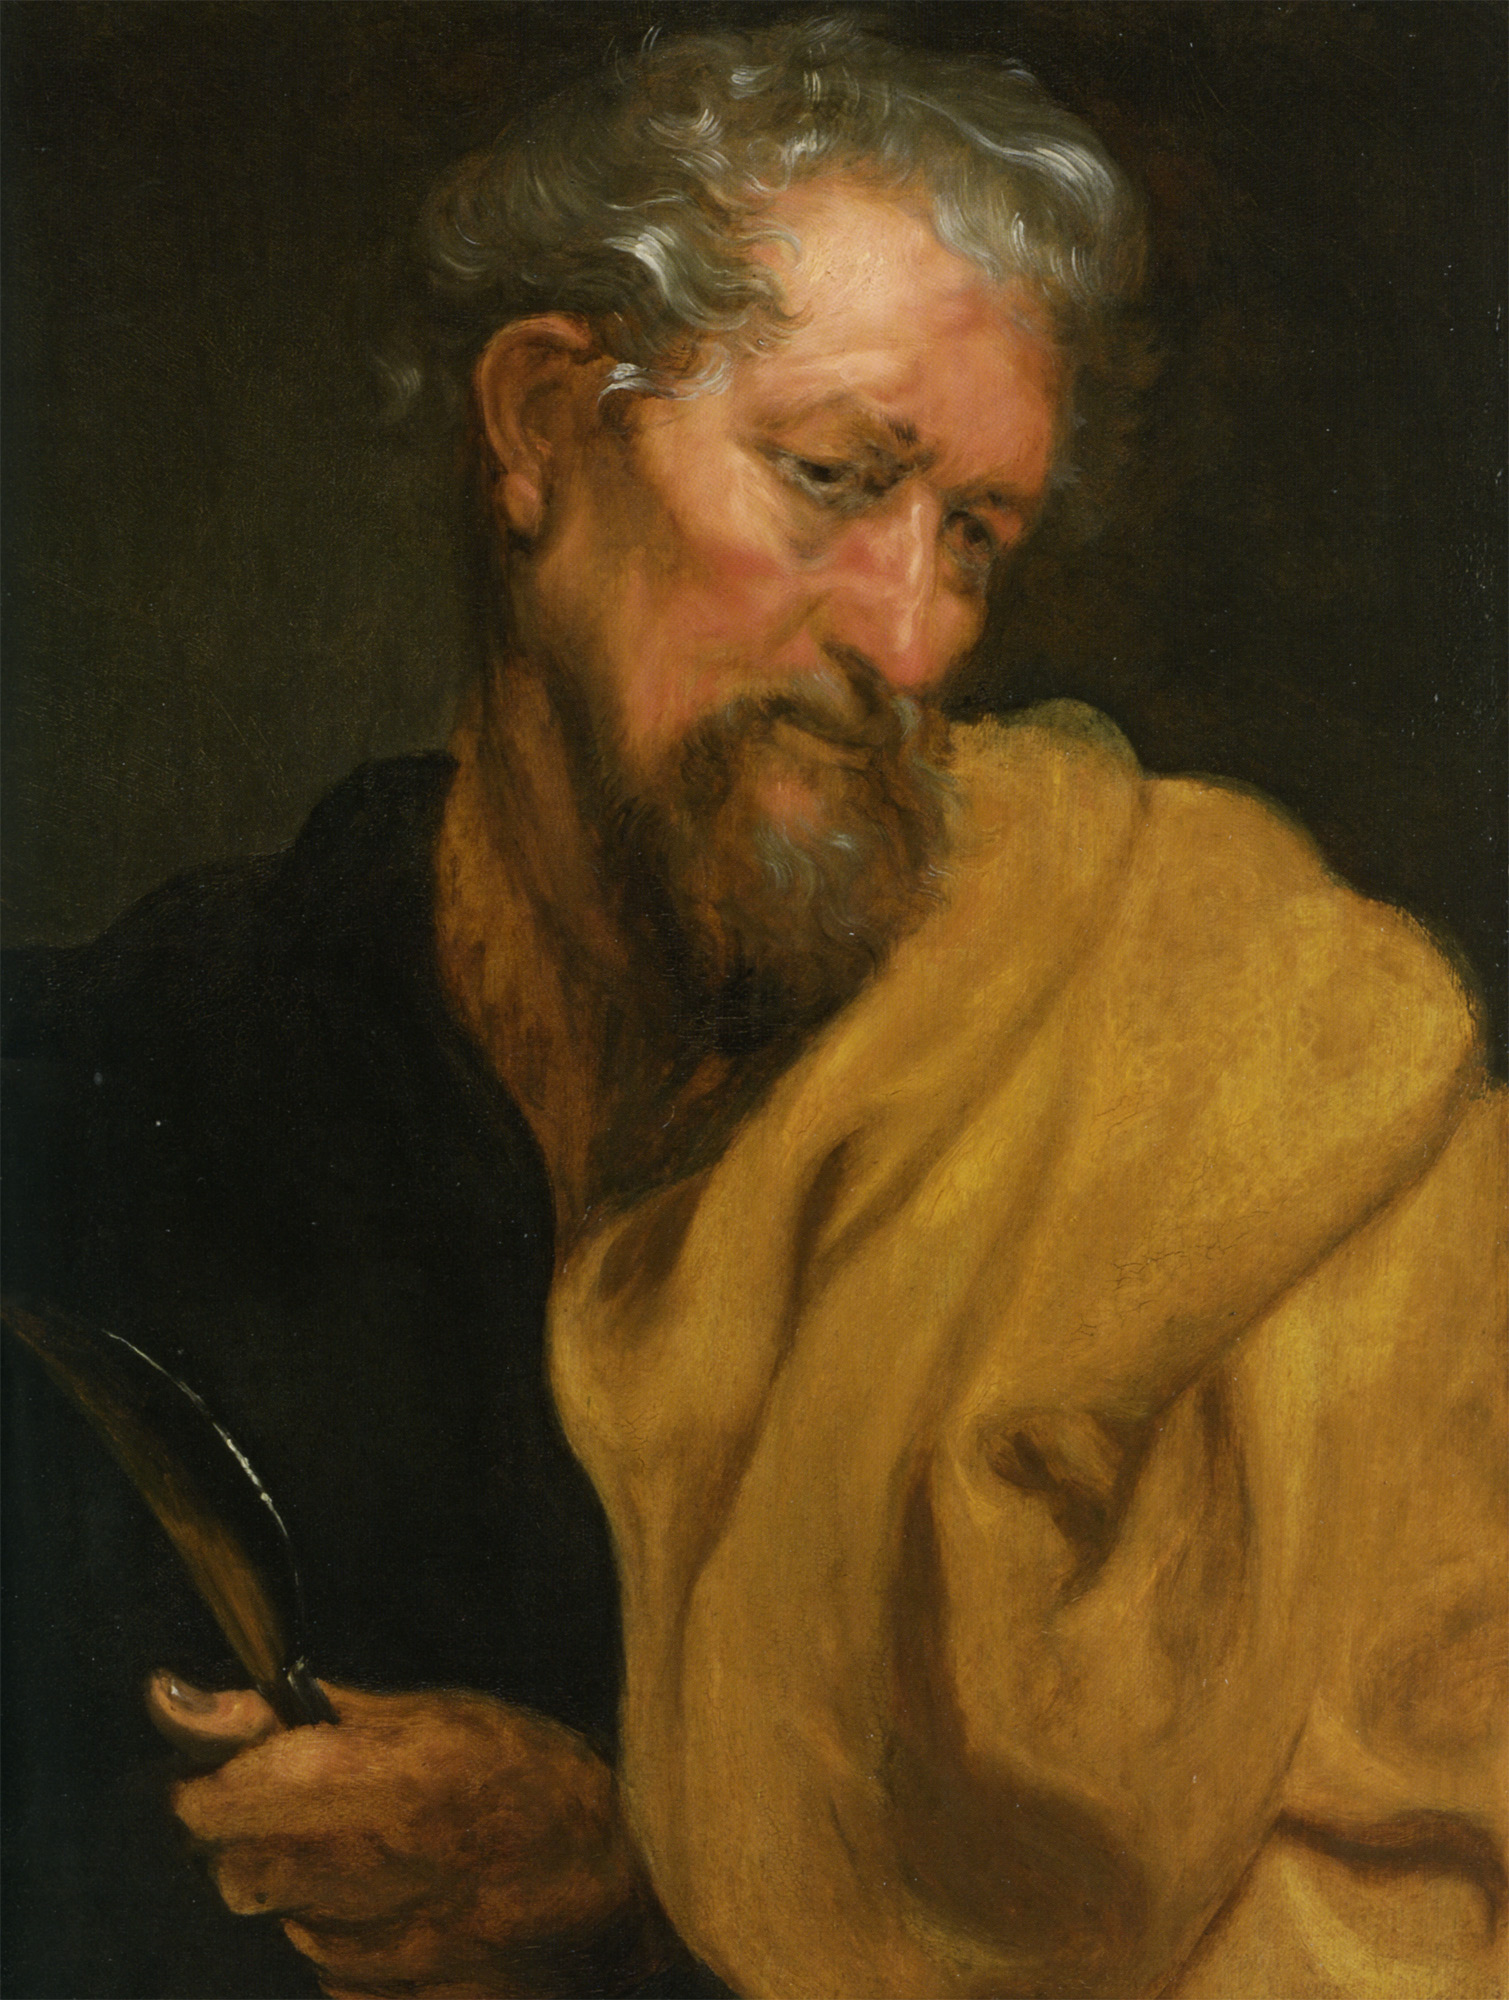 IMG ST. BARTHOLOMEW the Apostle